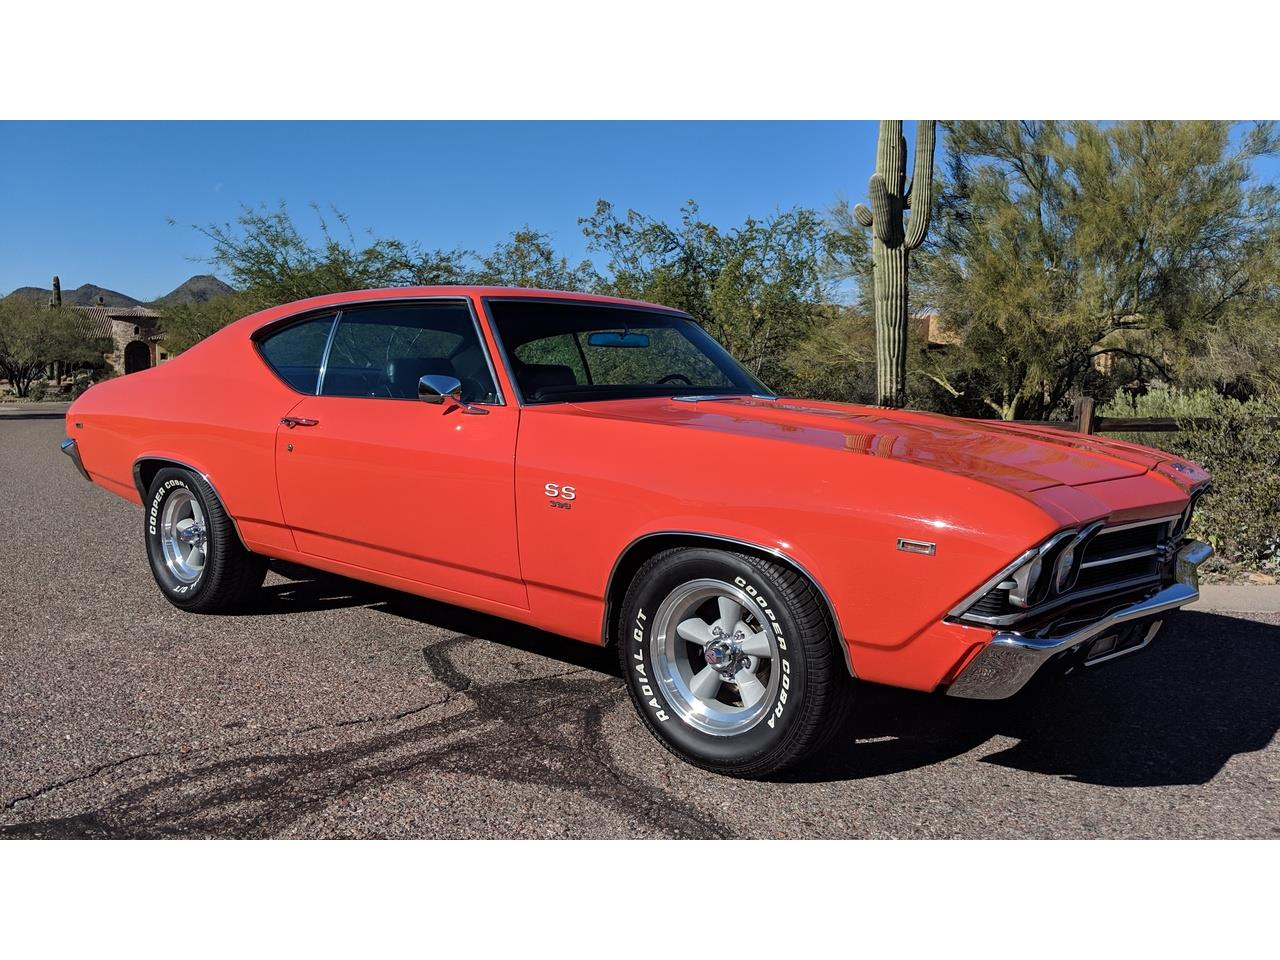 Large Picture of Classic '69 Chevrolet Chevelle SS located in CAVE CREEK Arizona Offered by a Private Seller - PEBN